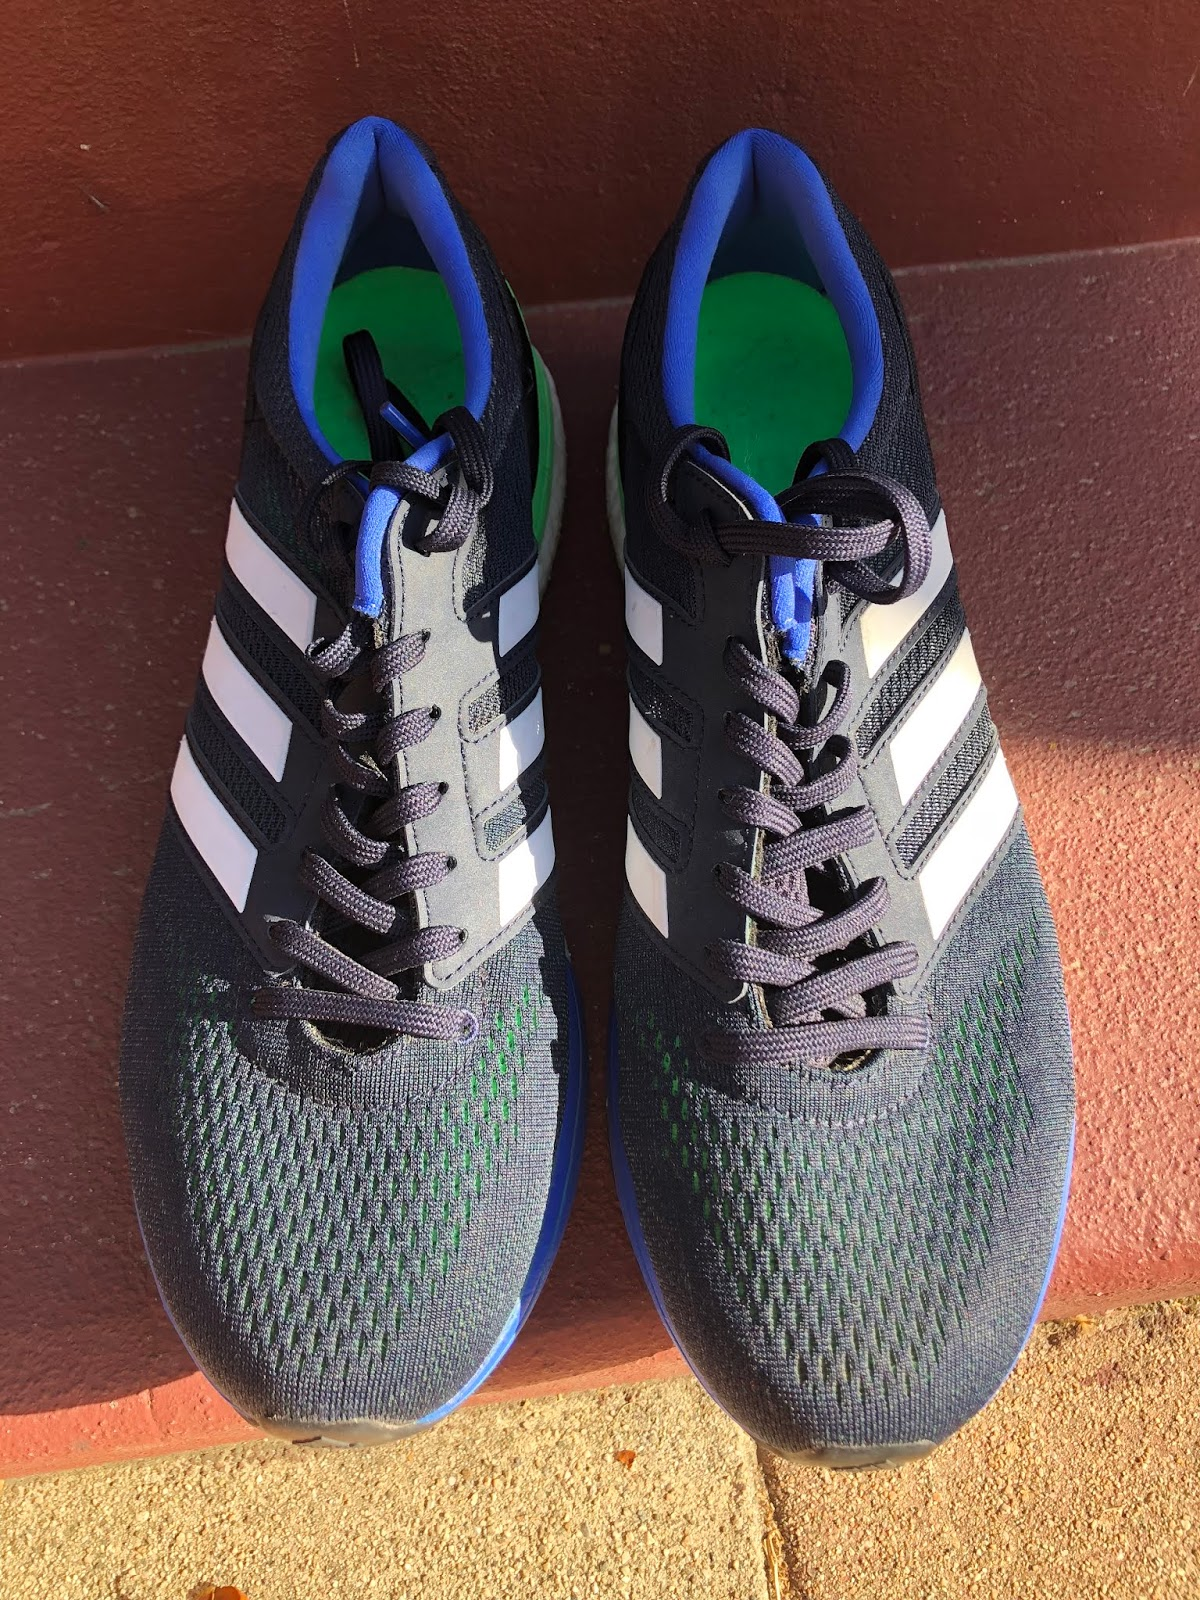 Adizero Boston Adidas Adizero Boston Adidas 7 7 Review Review nqgg6HRw4x